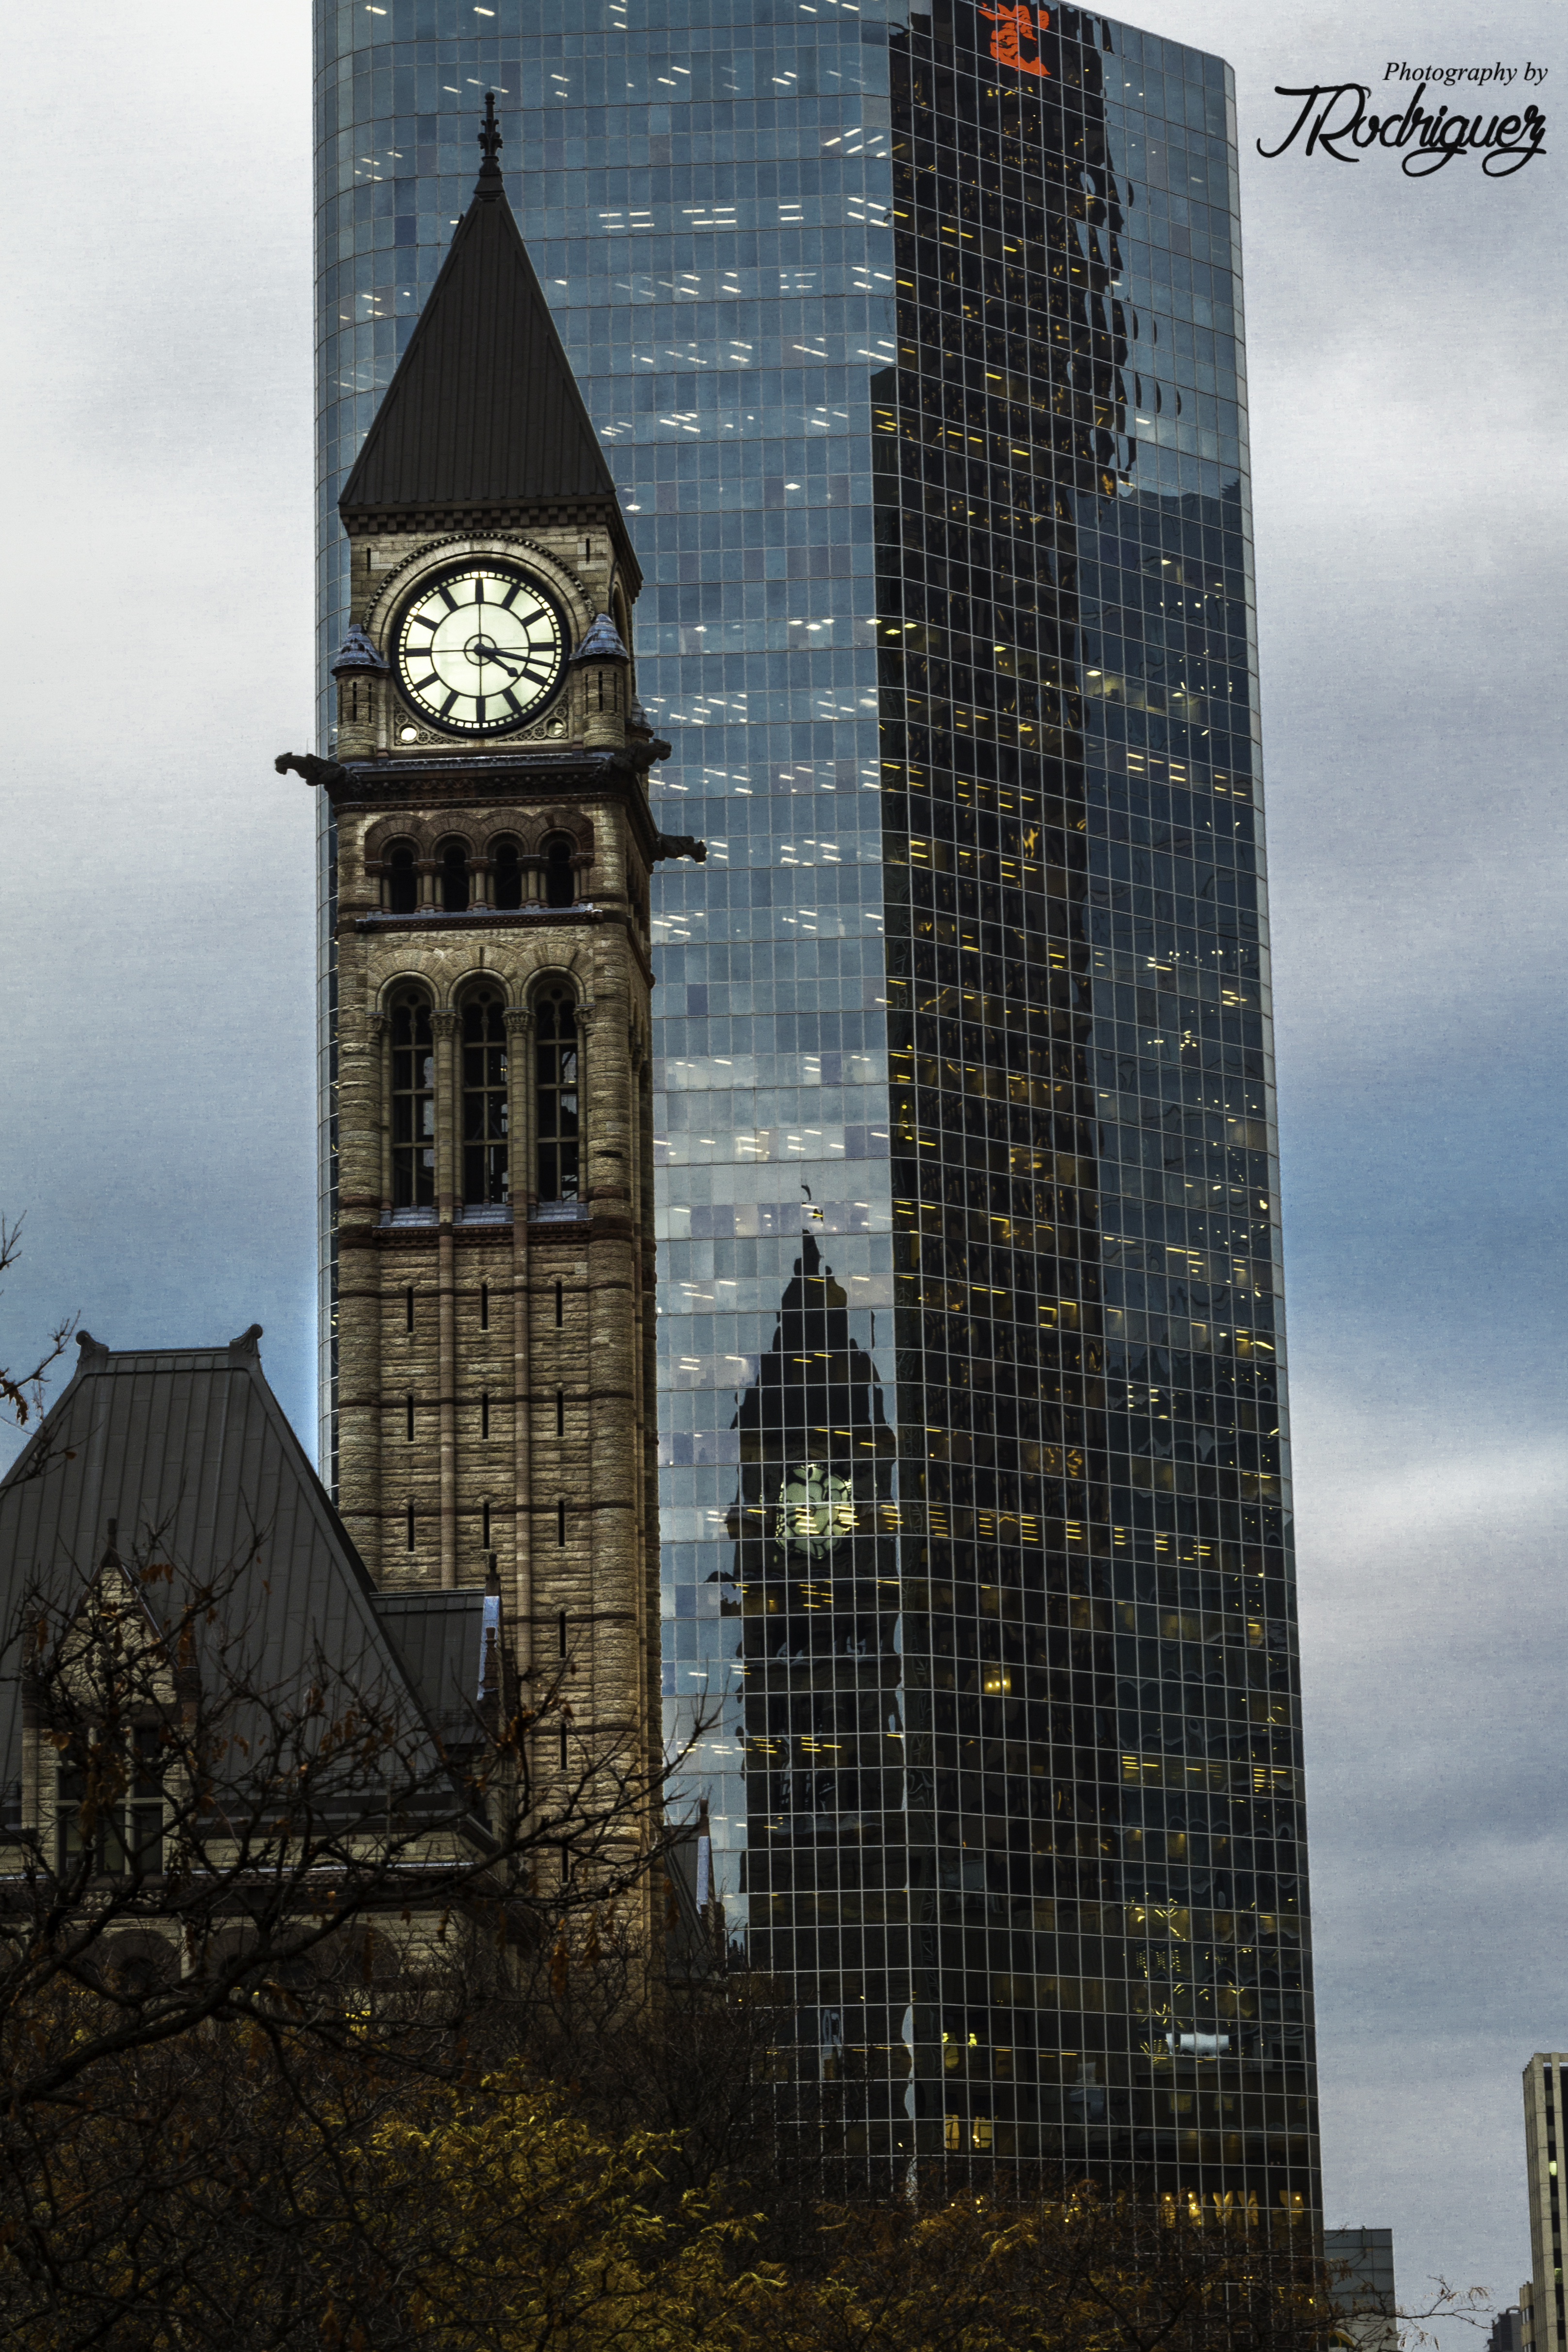 Old Toronto's City Hall Clock Tower